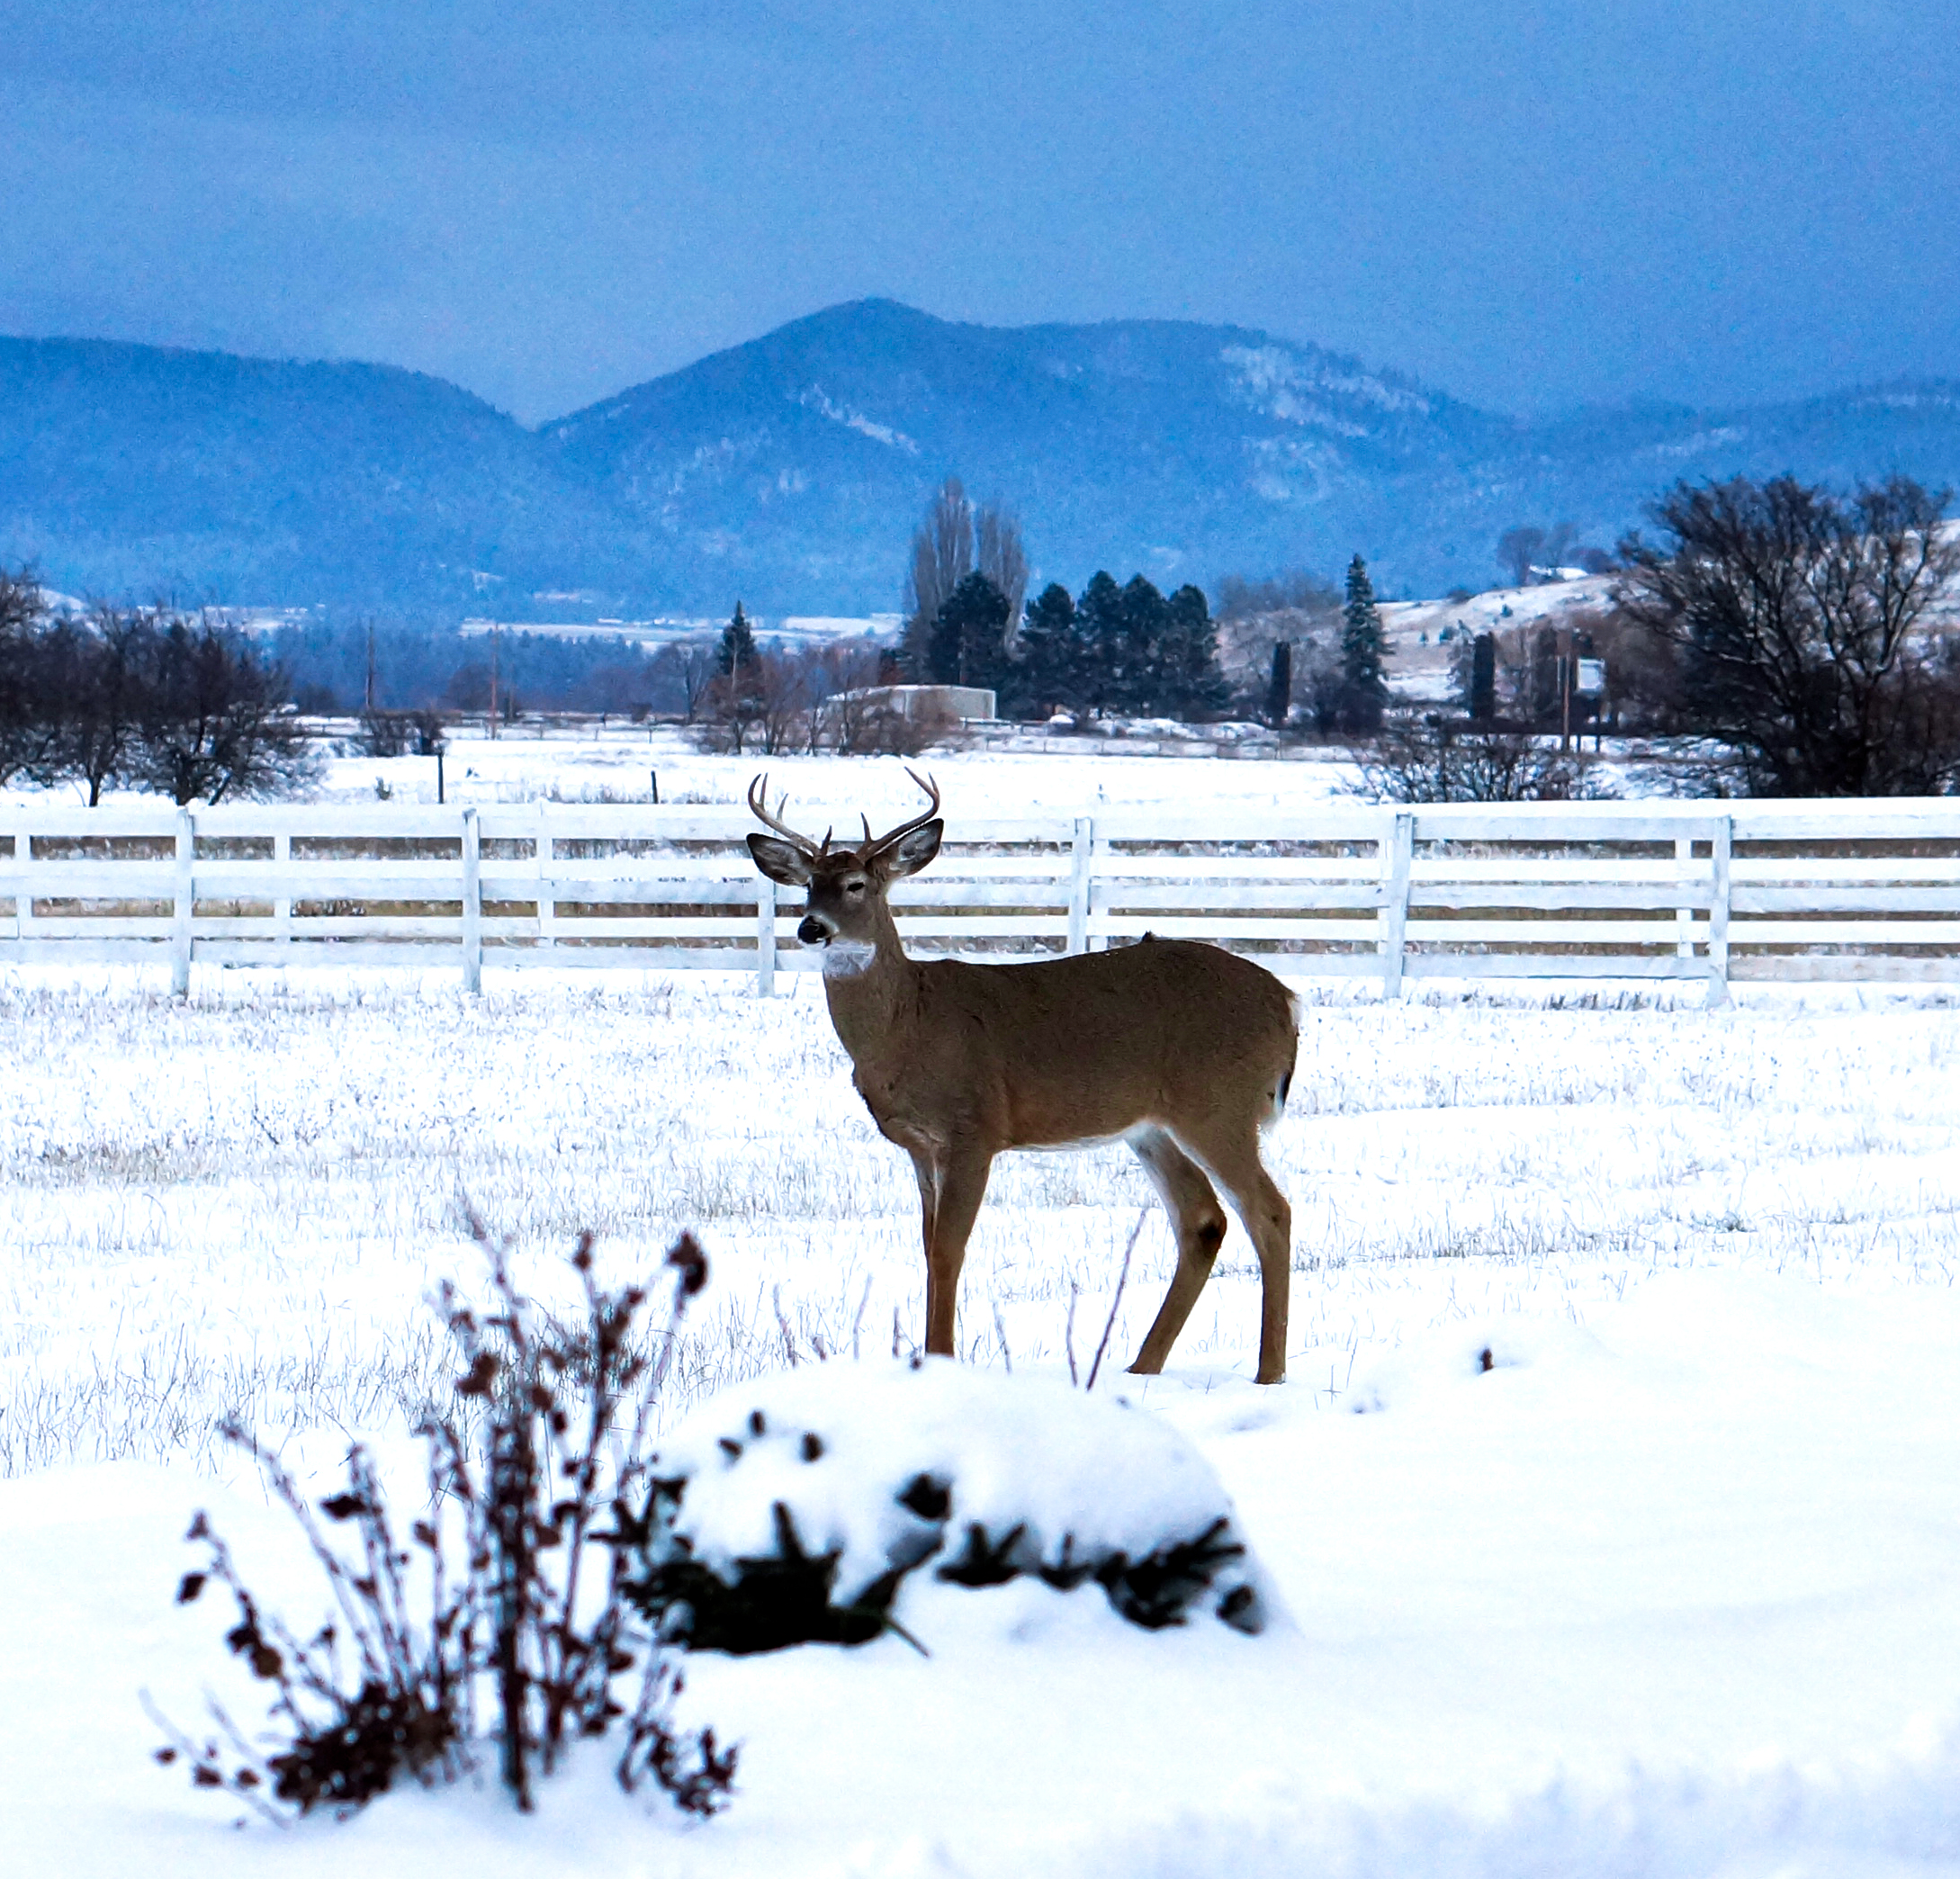 An often-overlooked planning consideration in Montana: some guests will always show up unannounced.